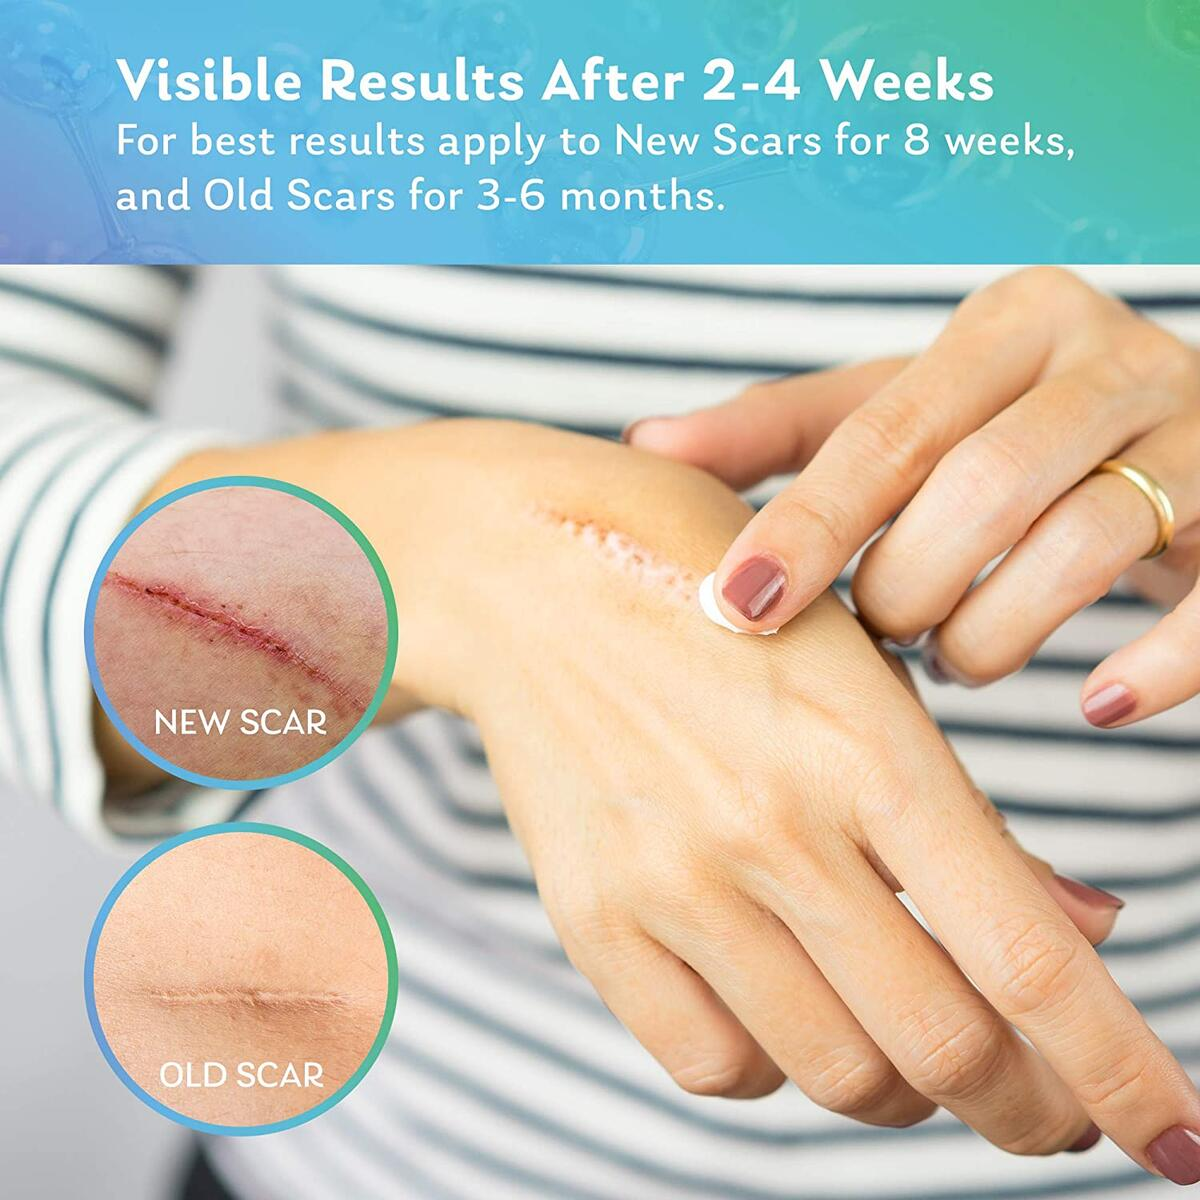 Regeneren Plus Silicone Scar gel, Advanced Scar Treatment, for C-section, Stretch Marks, Burns Repair, Acne, Surgery, Make Scars Smaller & Less Visible, Face and body Skin Repair